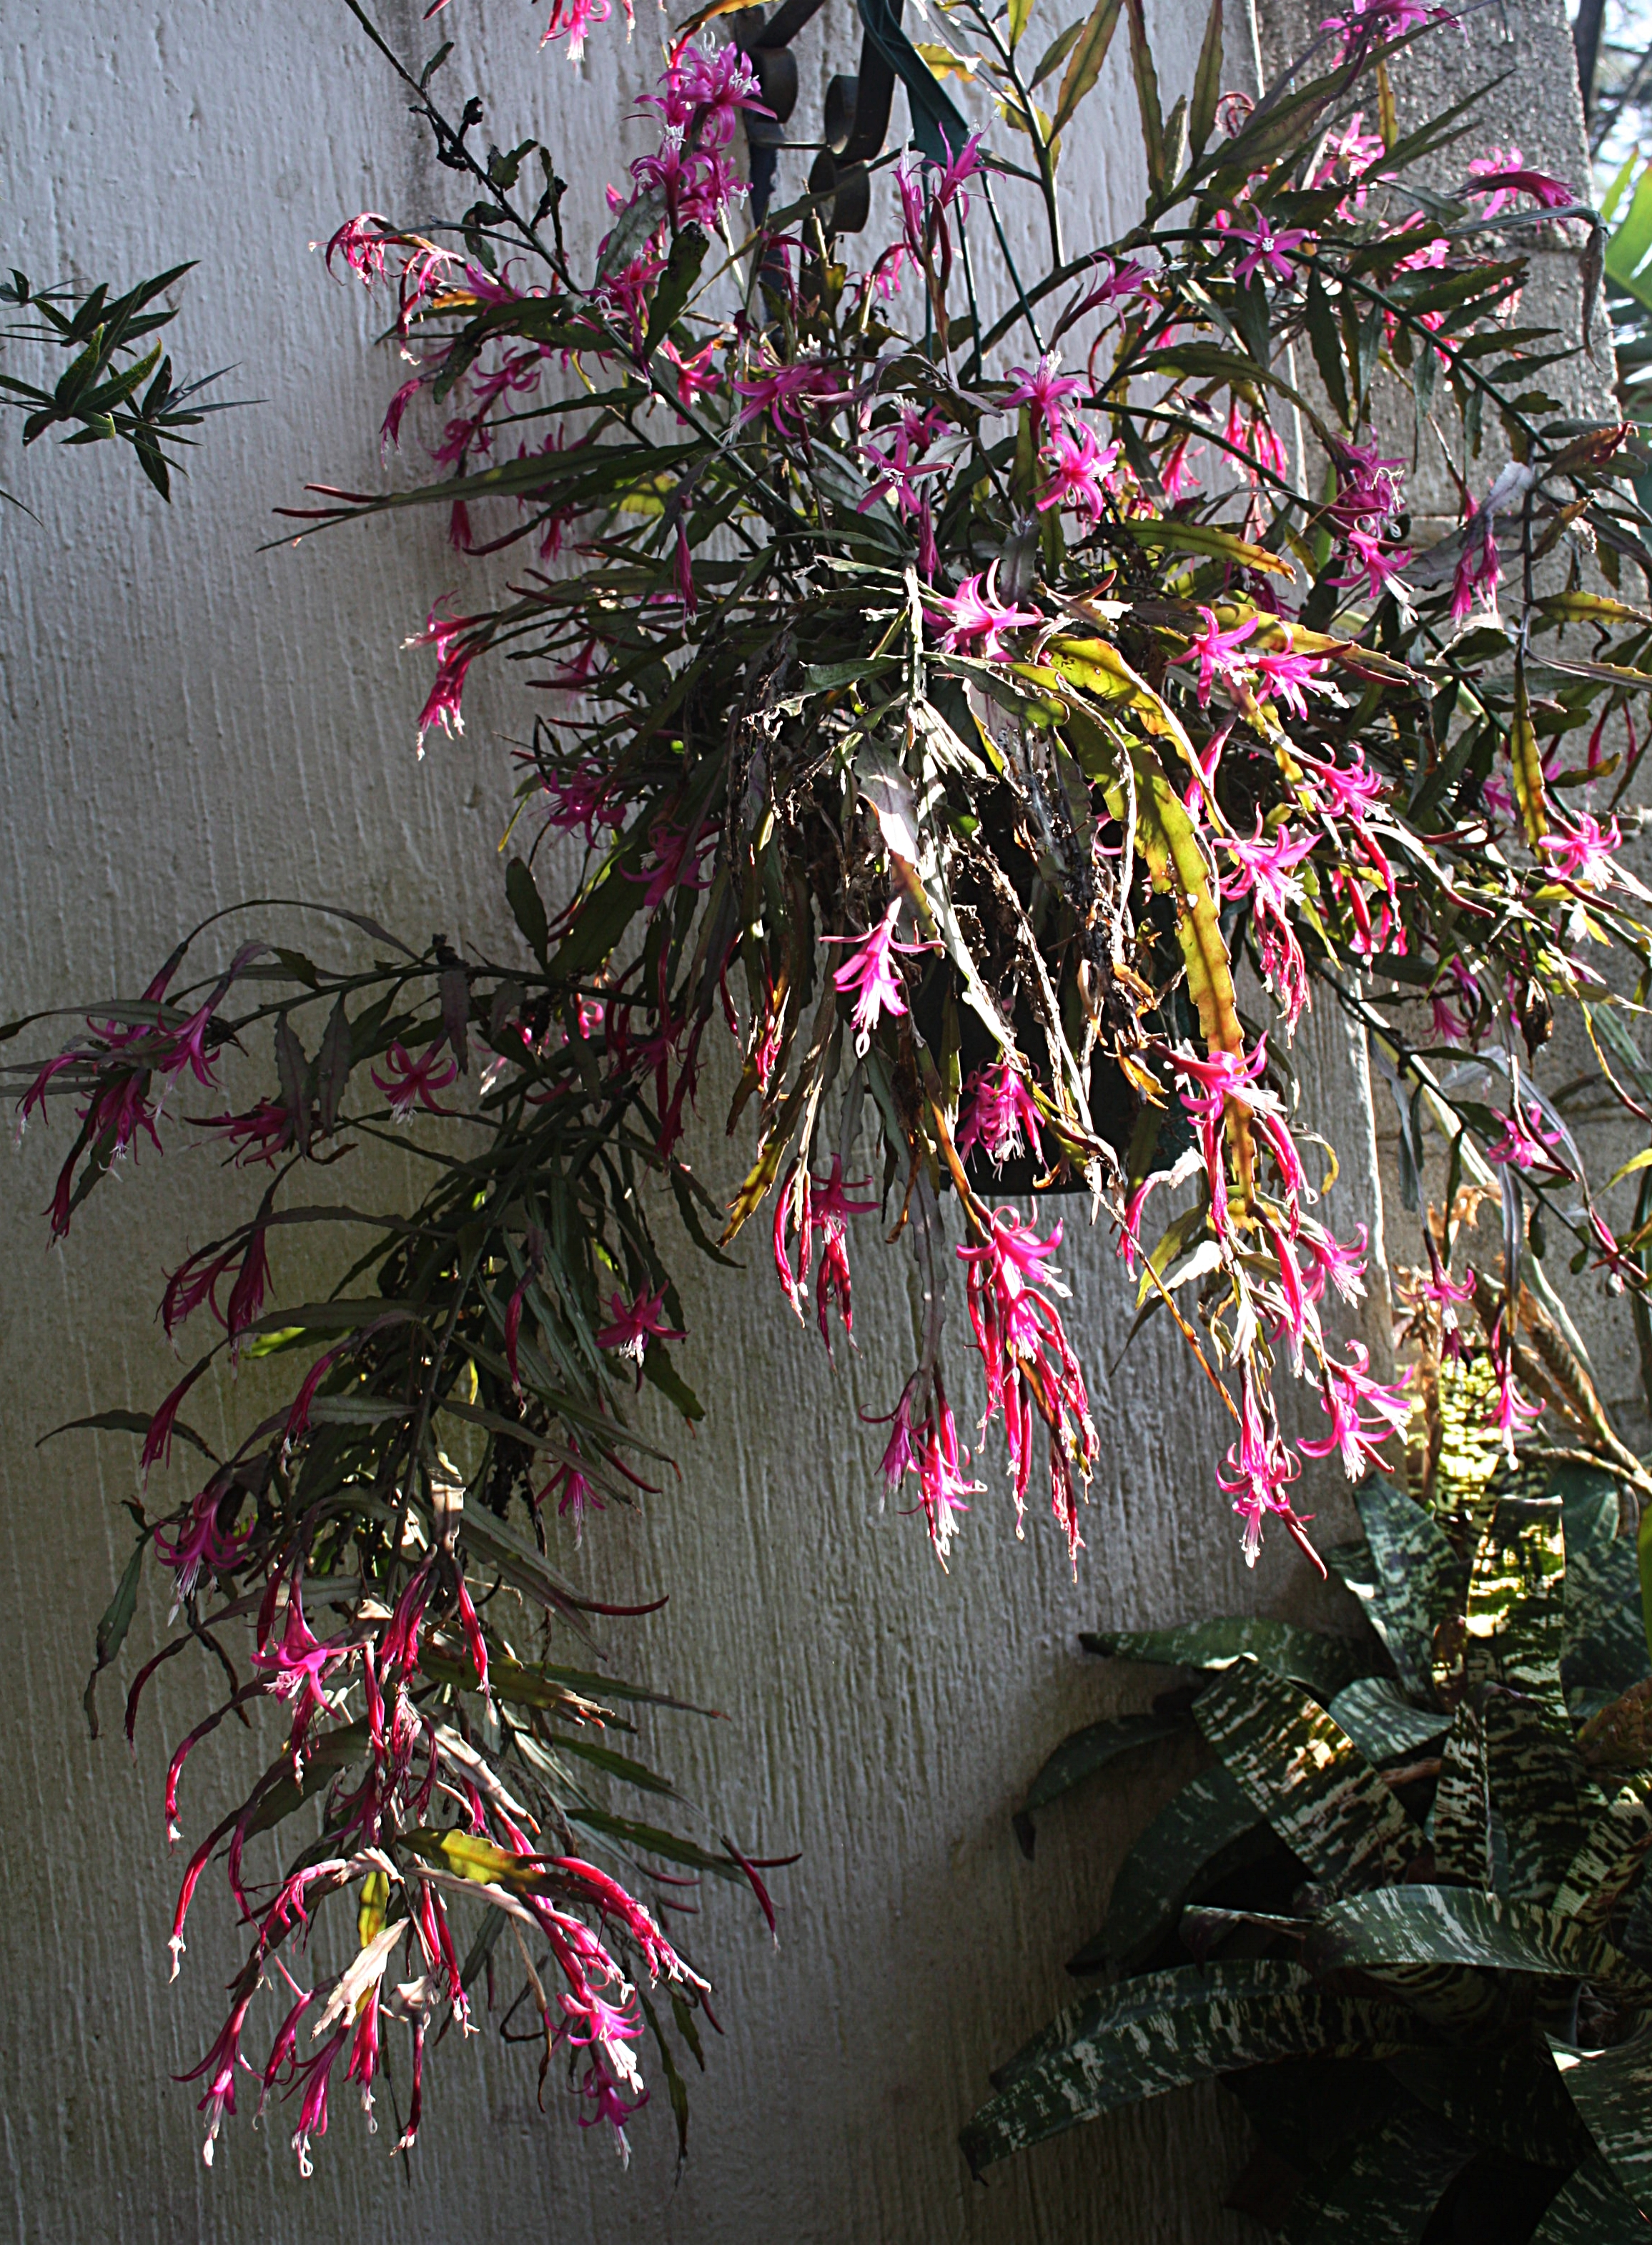 Well-flowered specimen of  Disocactus biformis  in my garden in Guatemala.